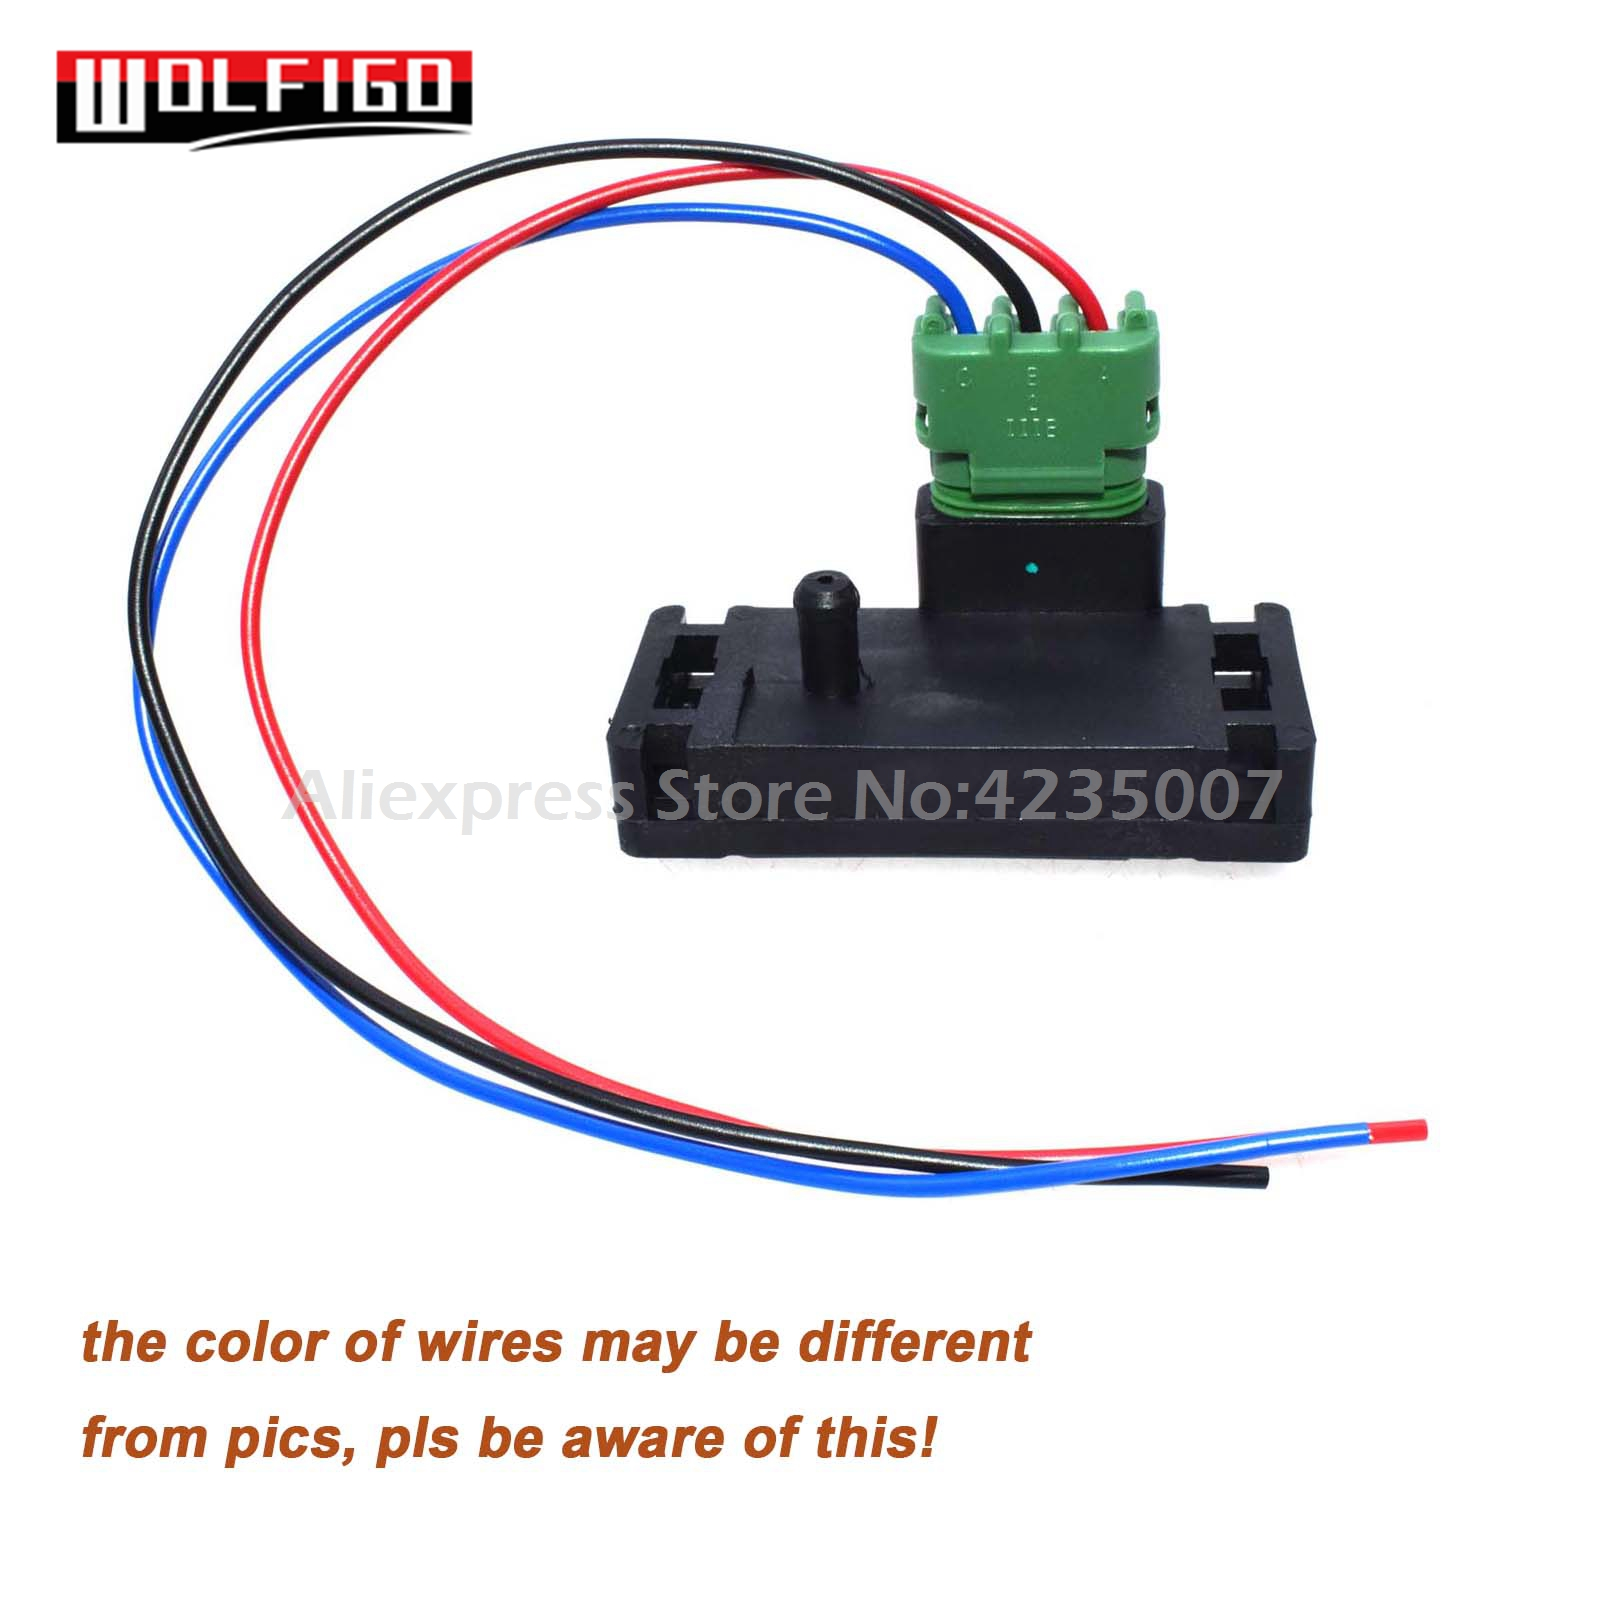 hight resolution of wolfigo new 1 bar map sensor with pigtail connector plug wire 16040749 12223861 for chevy